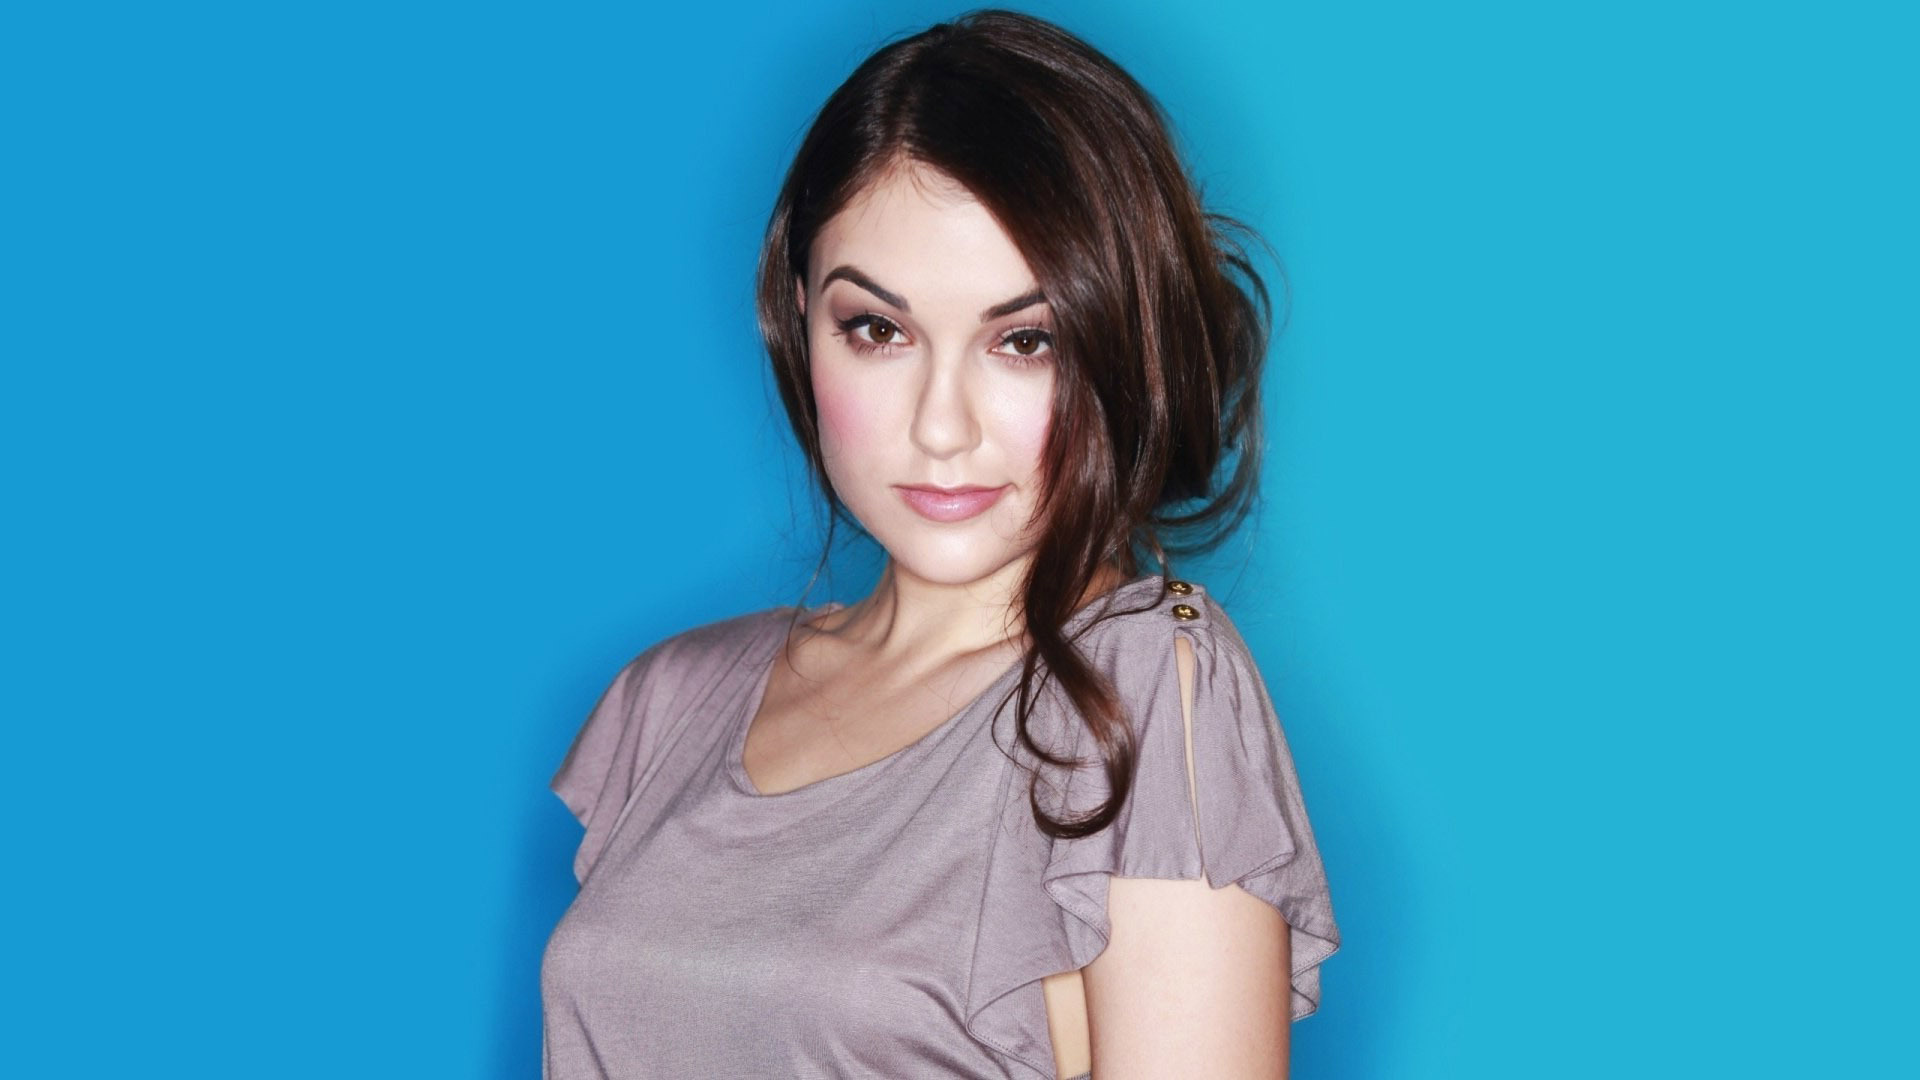 sasha grey wallpapers #19